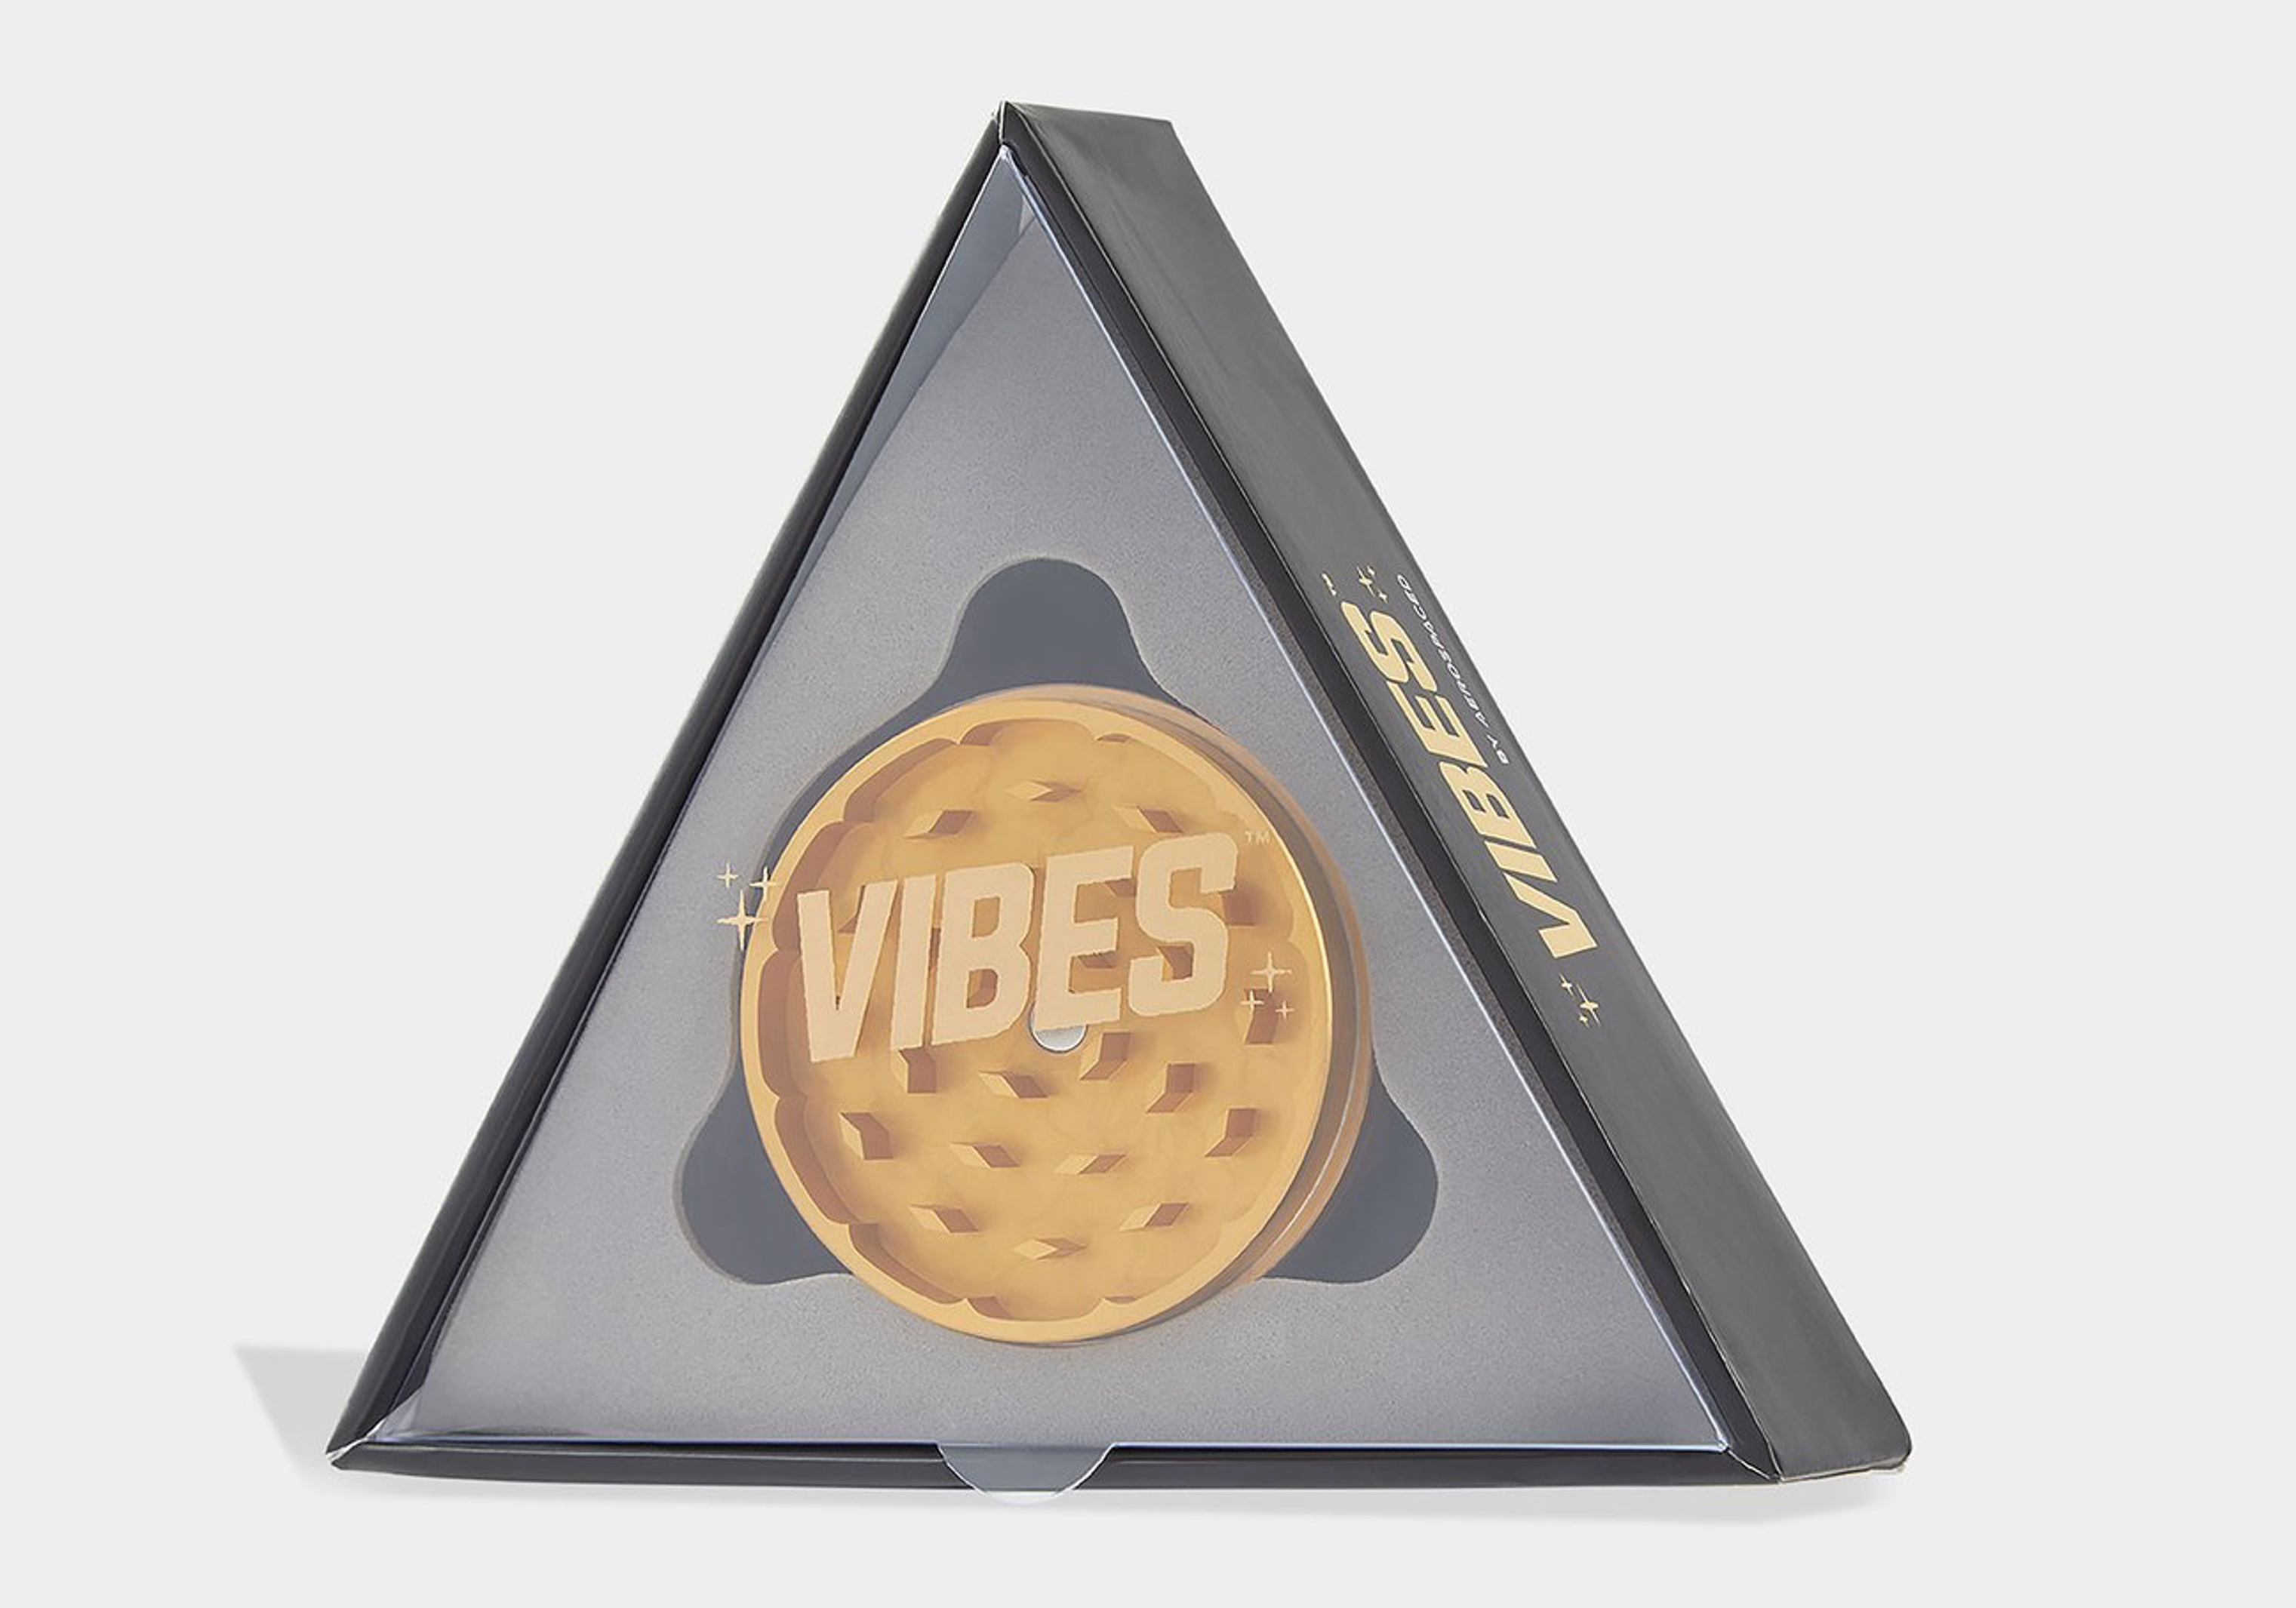 VIBES x AREOSPACED 2 Piece Grinder